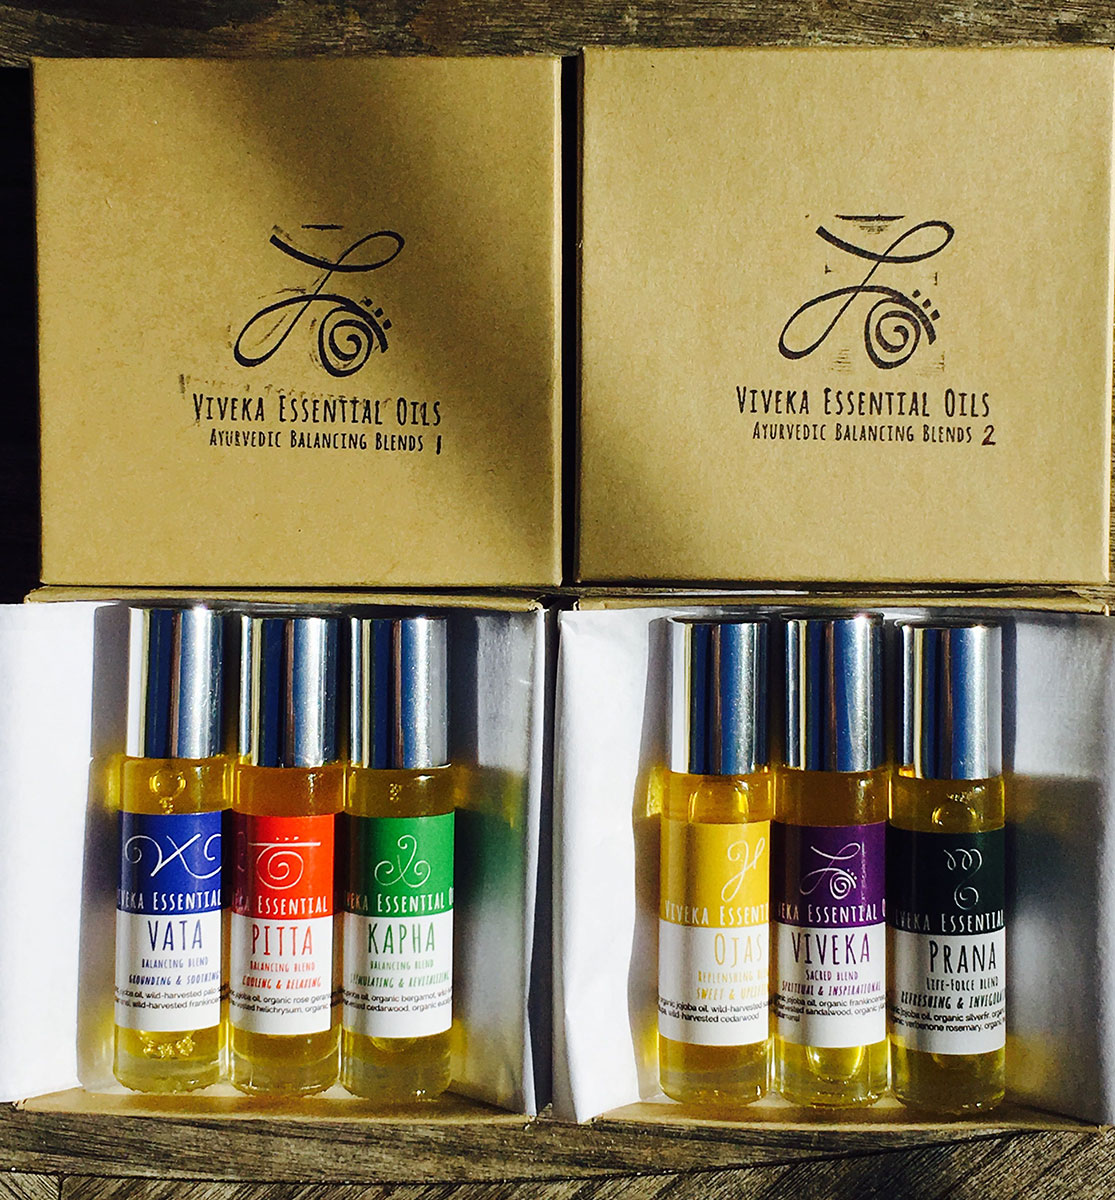 Show love for yourself with  Viveka Essential Oils Box Sets!  Makes a great gift as well.